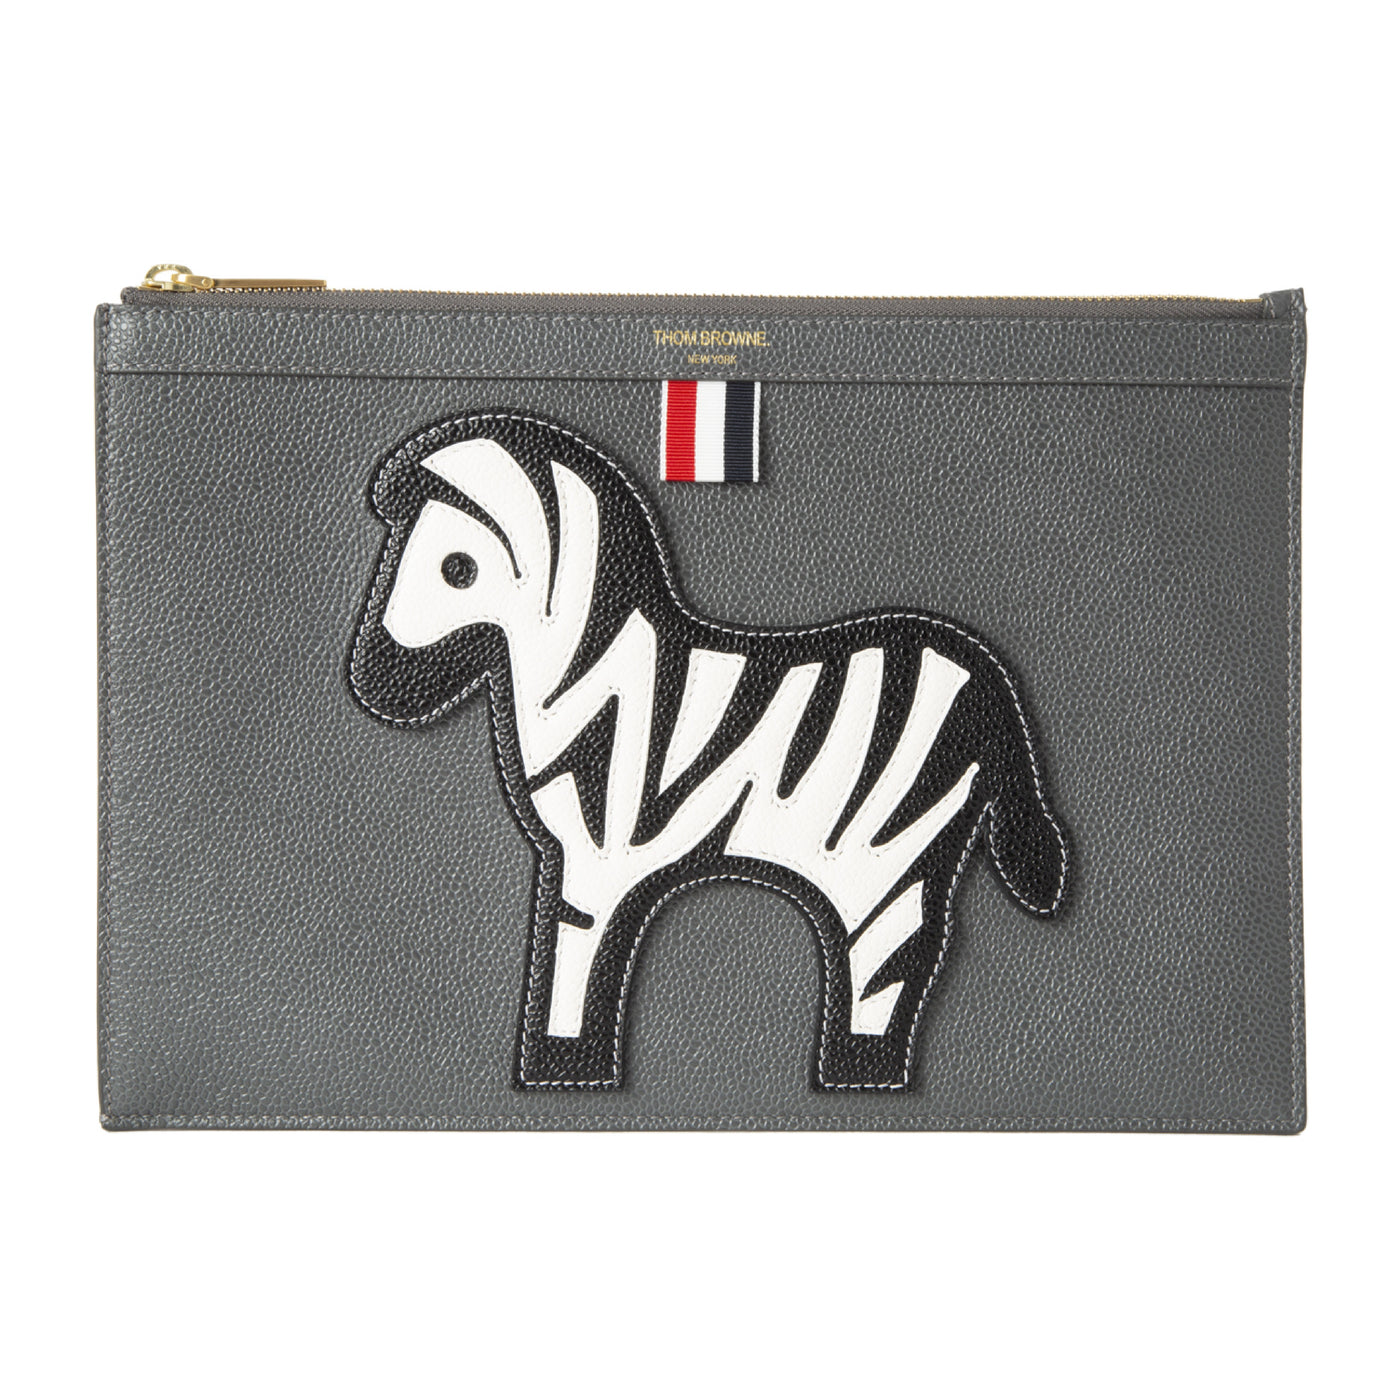 Load image into Gallery viewer, THOM BROWNE PEBBLED LEATHER POUCH GREY